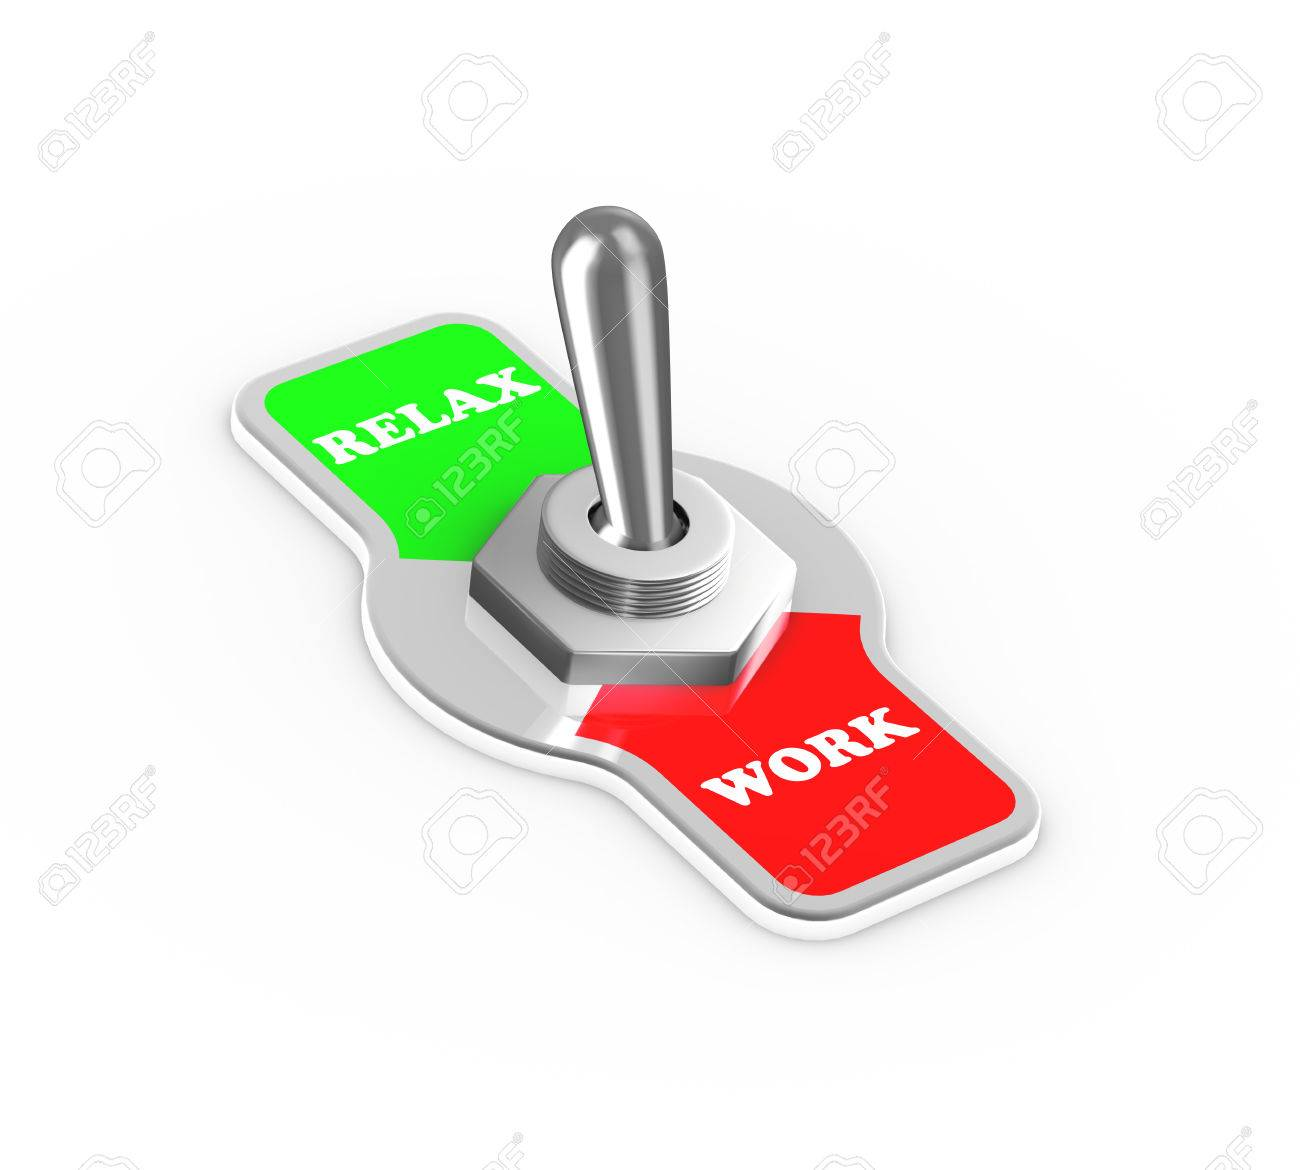 3d Rendering Of Work Relax Toggle Switch Button Flipped In The ...